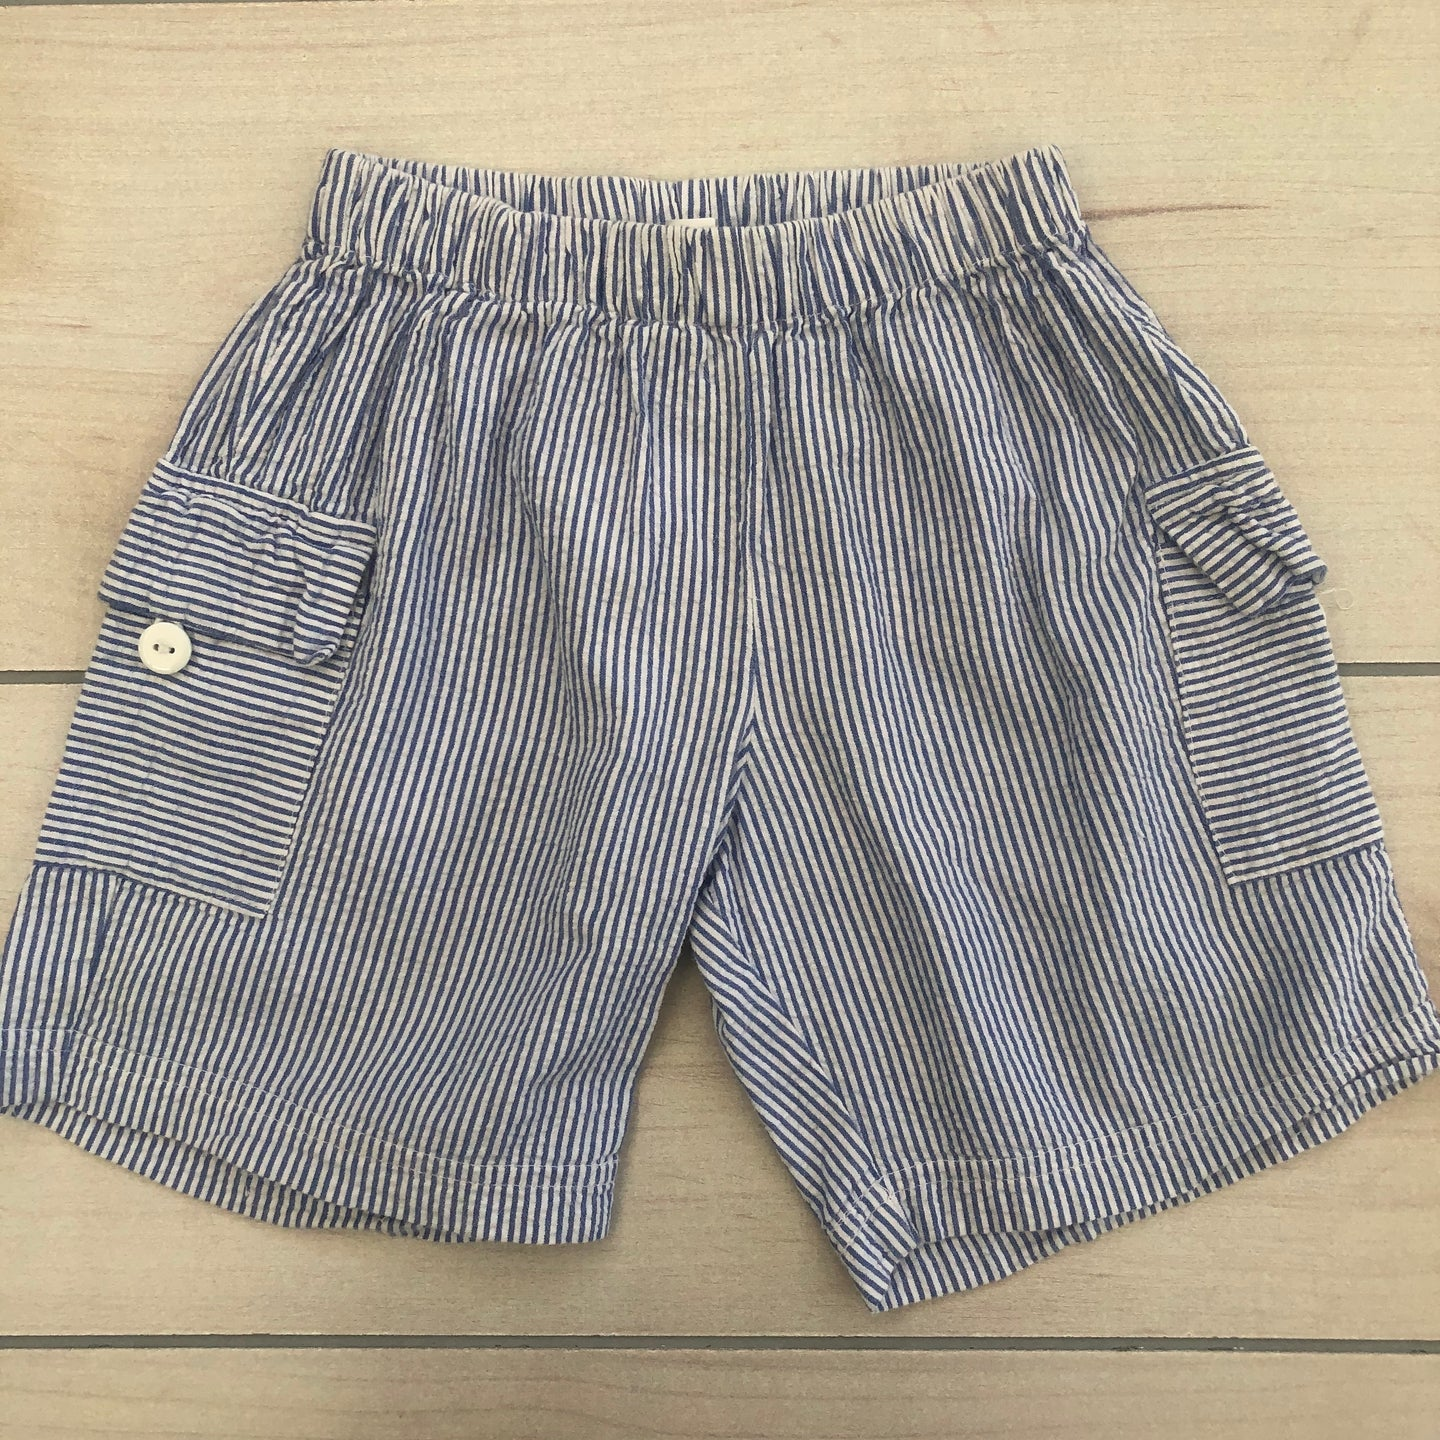 Blue Seersucker Pull Up Shorts Size 3